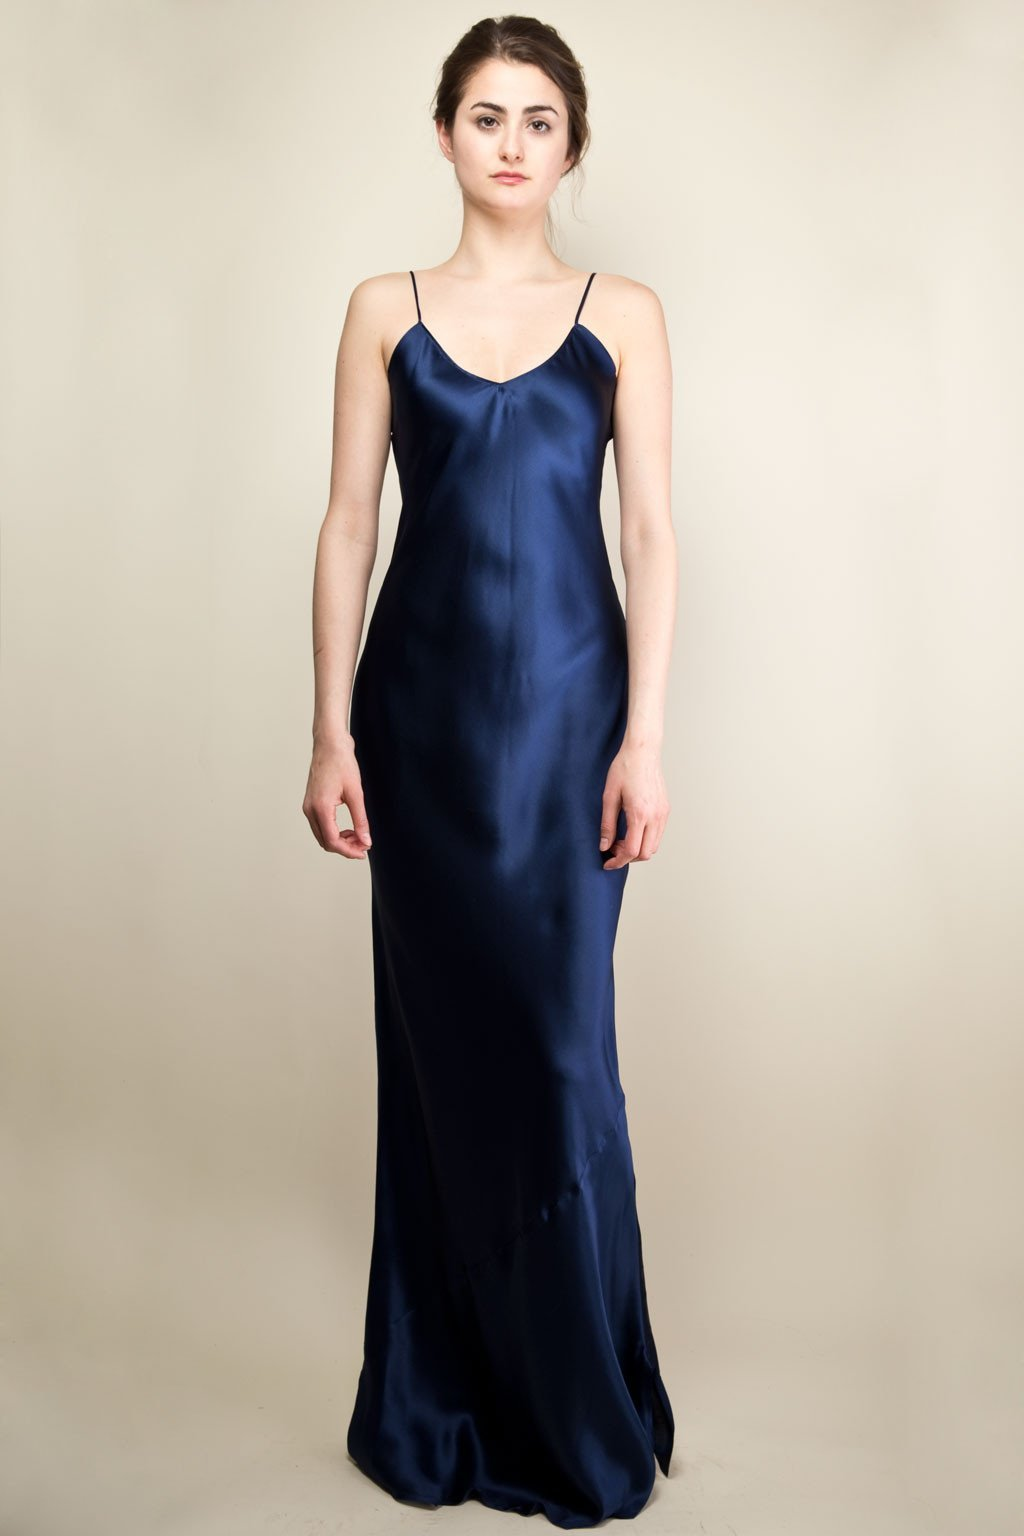 Pippa Long Slip Dress - Royal Blue